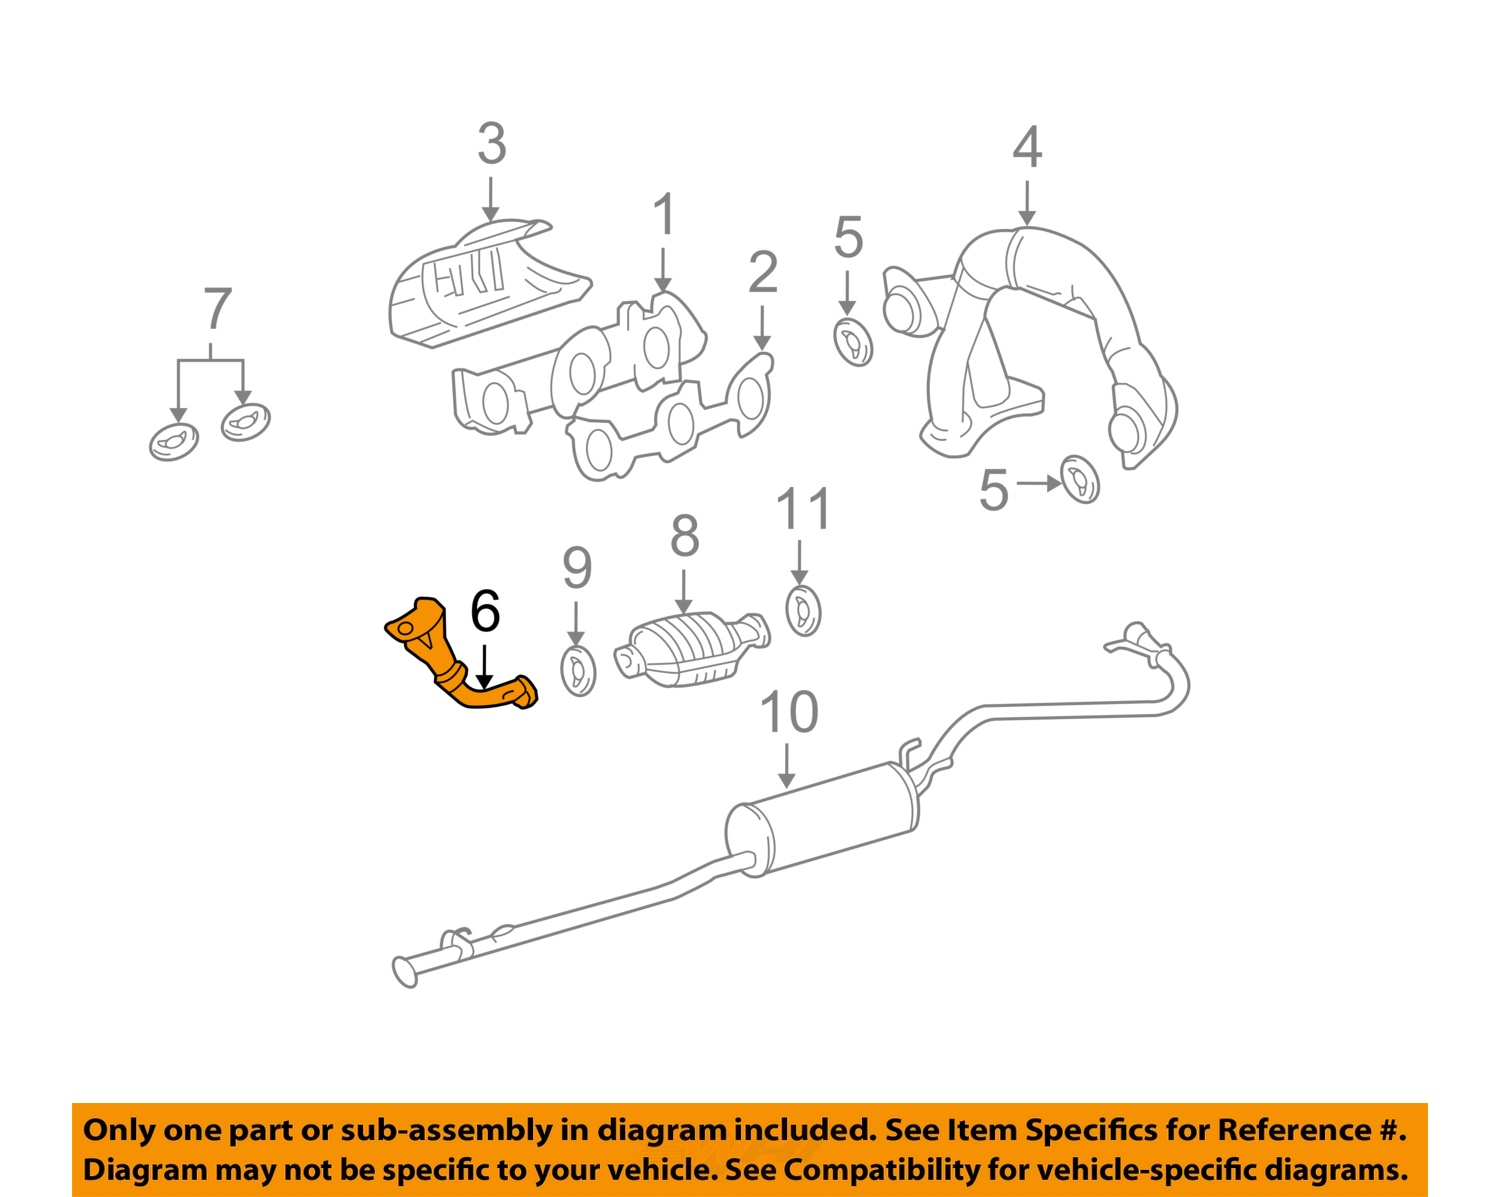 toyota oem tacoma l v exhaust system front pipe toyota oem 95 00 tacoma 3 4l v6 exhaust system front pipe 1741007070